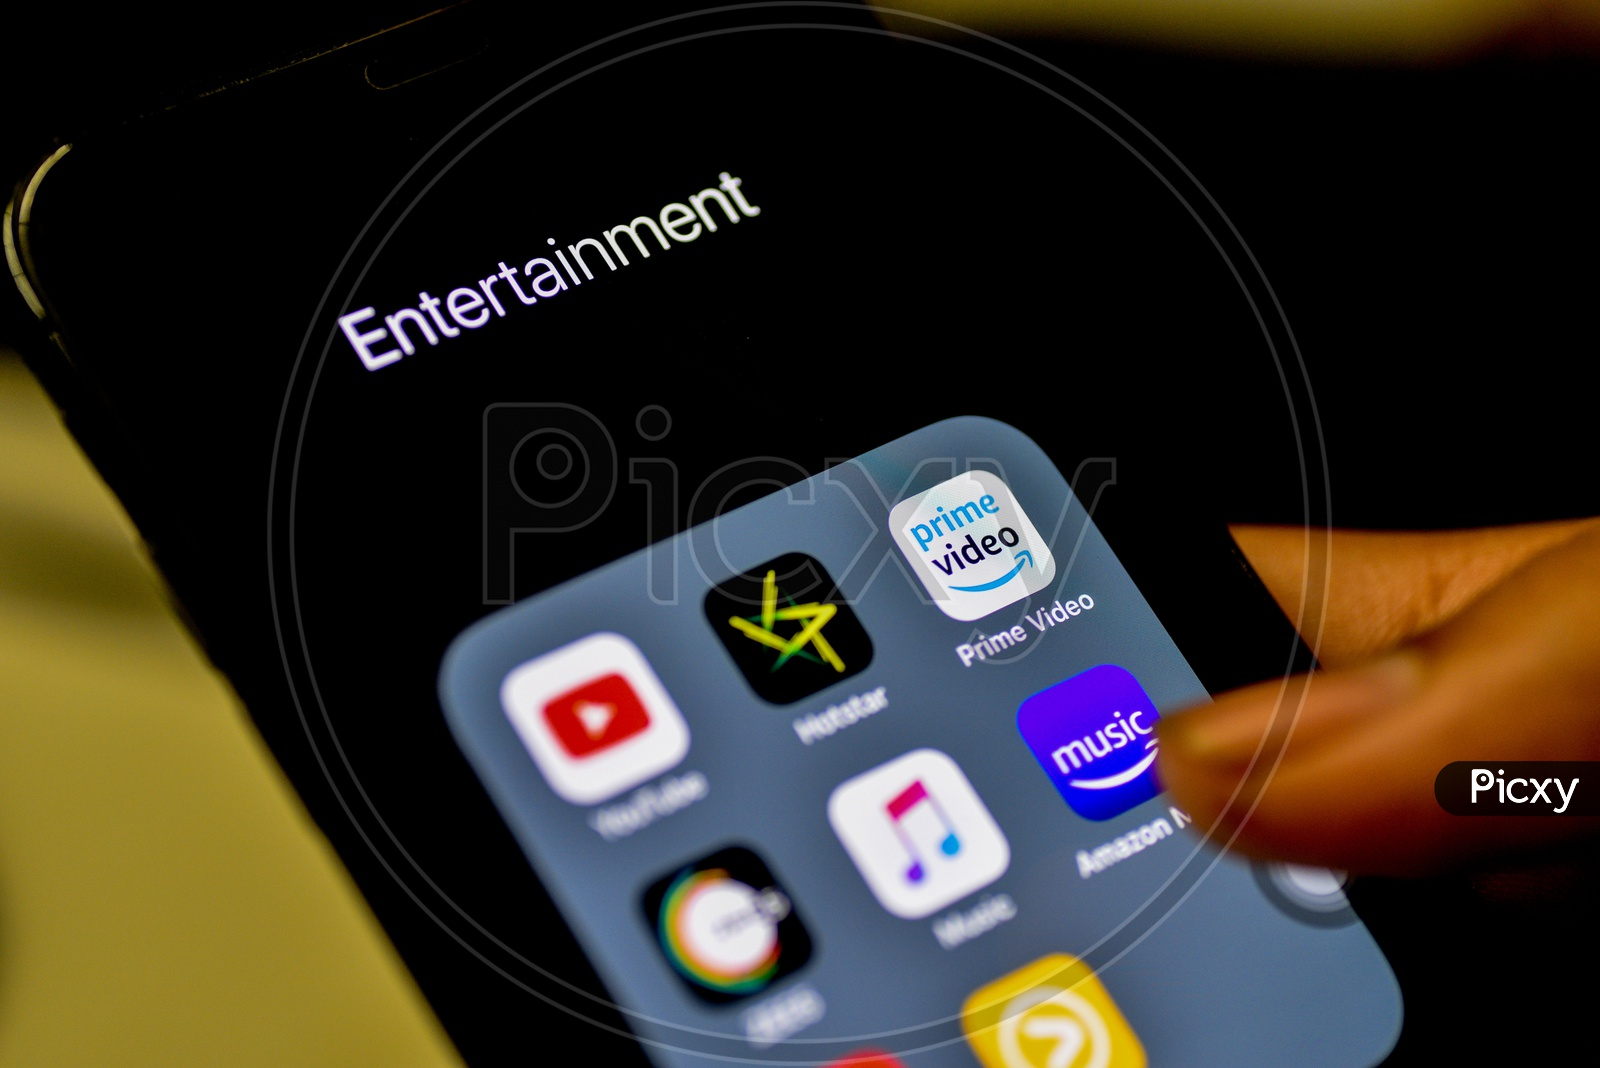 Entertainment Online Streaming Apps Installed Icons  On A Smartphone Screen Closeup With Selective Focus